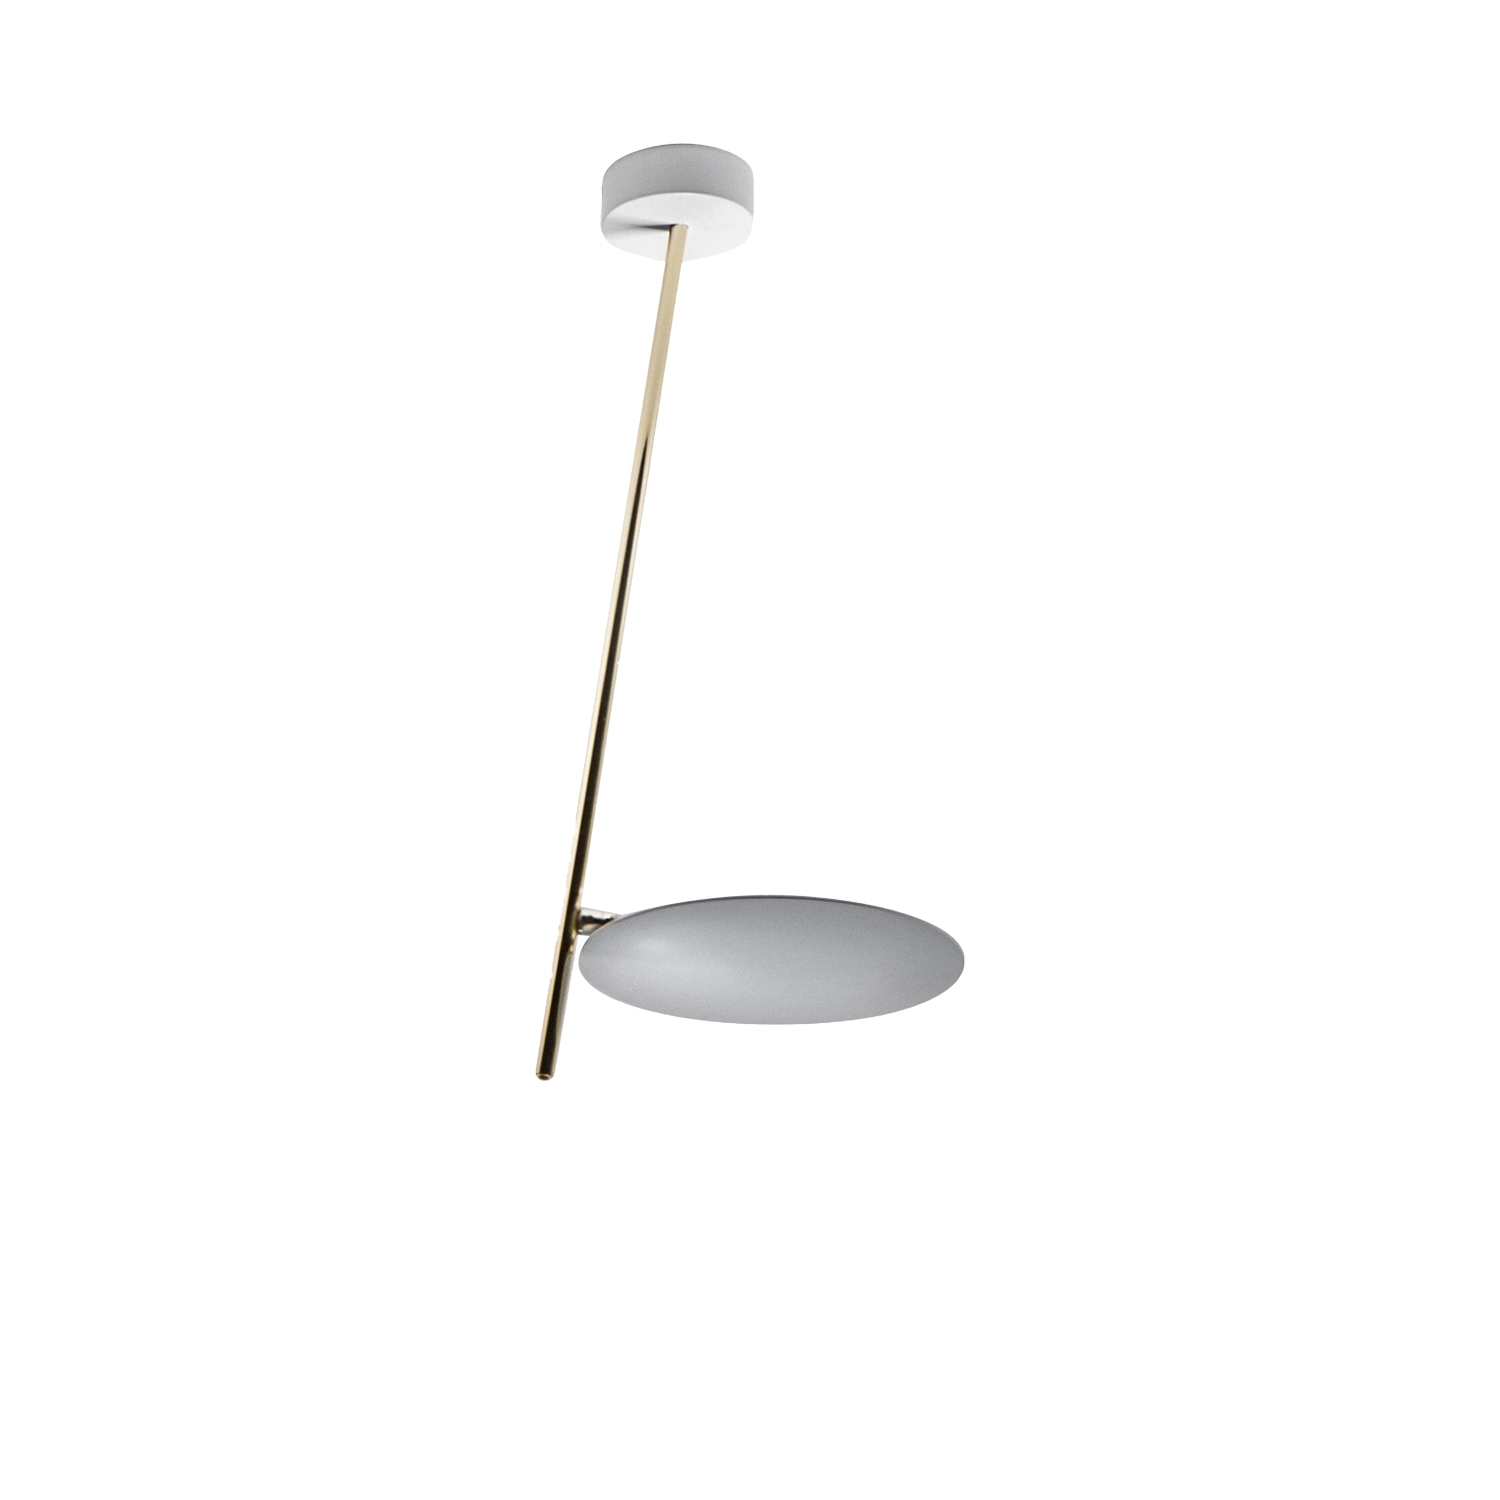 Lederam C1 Ceiling Lamp - Lederam embodies the accuracy of the motion required to draw a line. The warm, softly coloured disks surround a LED module with an ultra-flat shape, which creates thin lamps and suspended forms with curved, sinuous lines. | Matter of Stuff